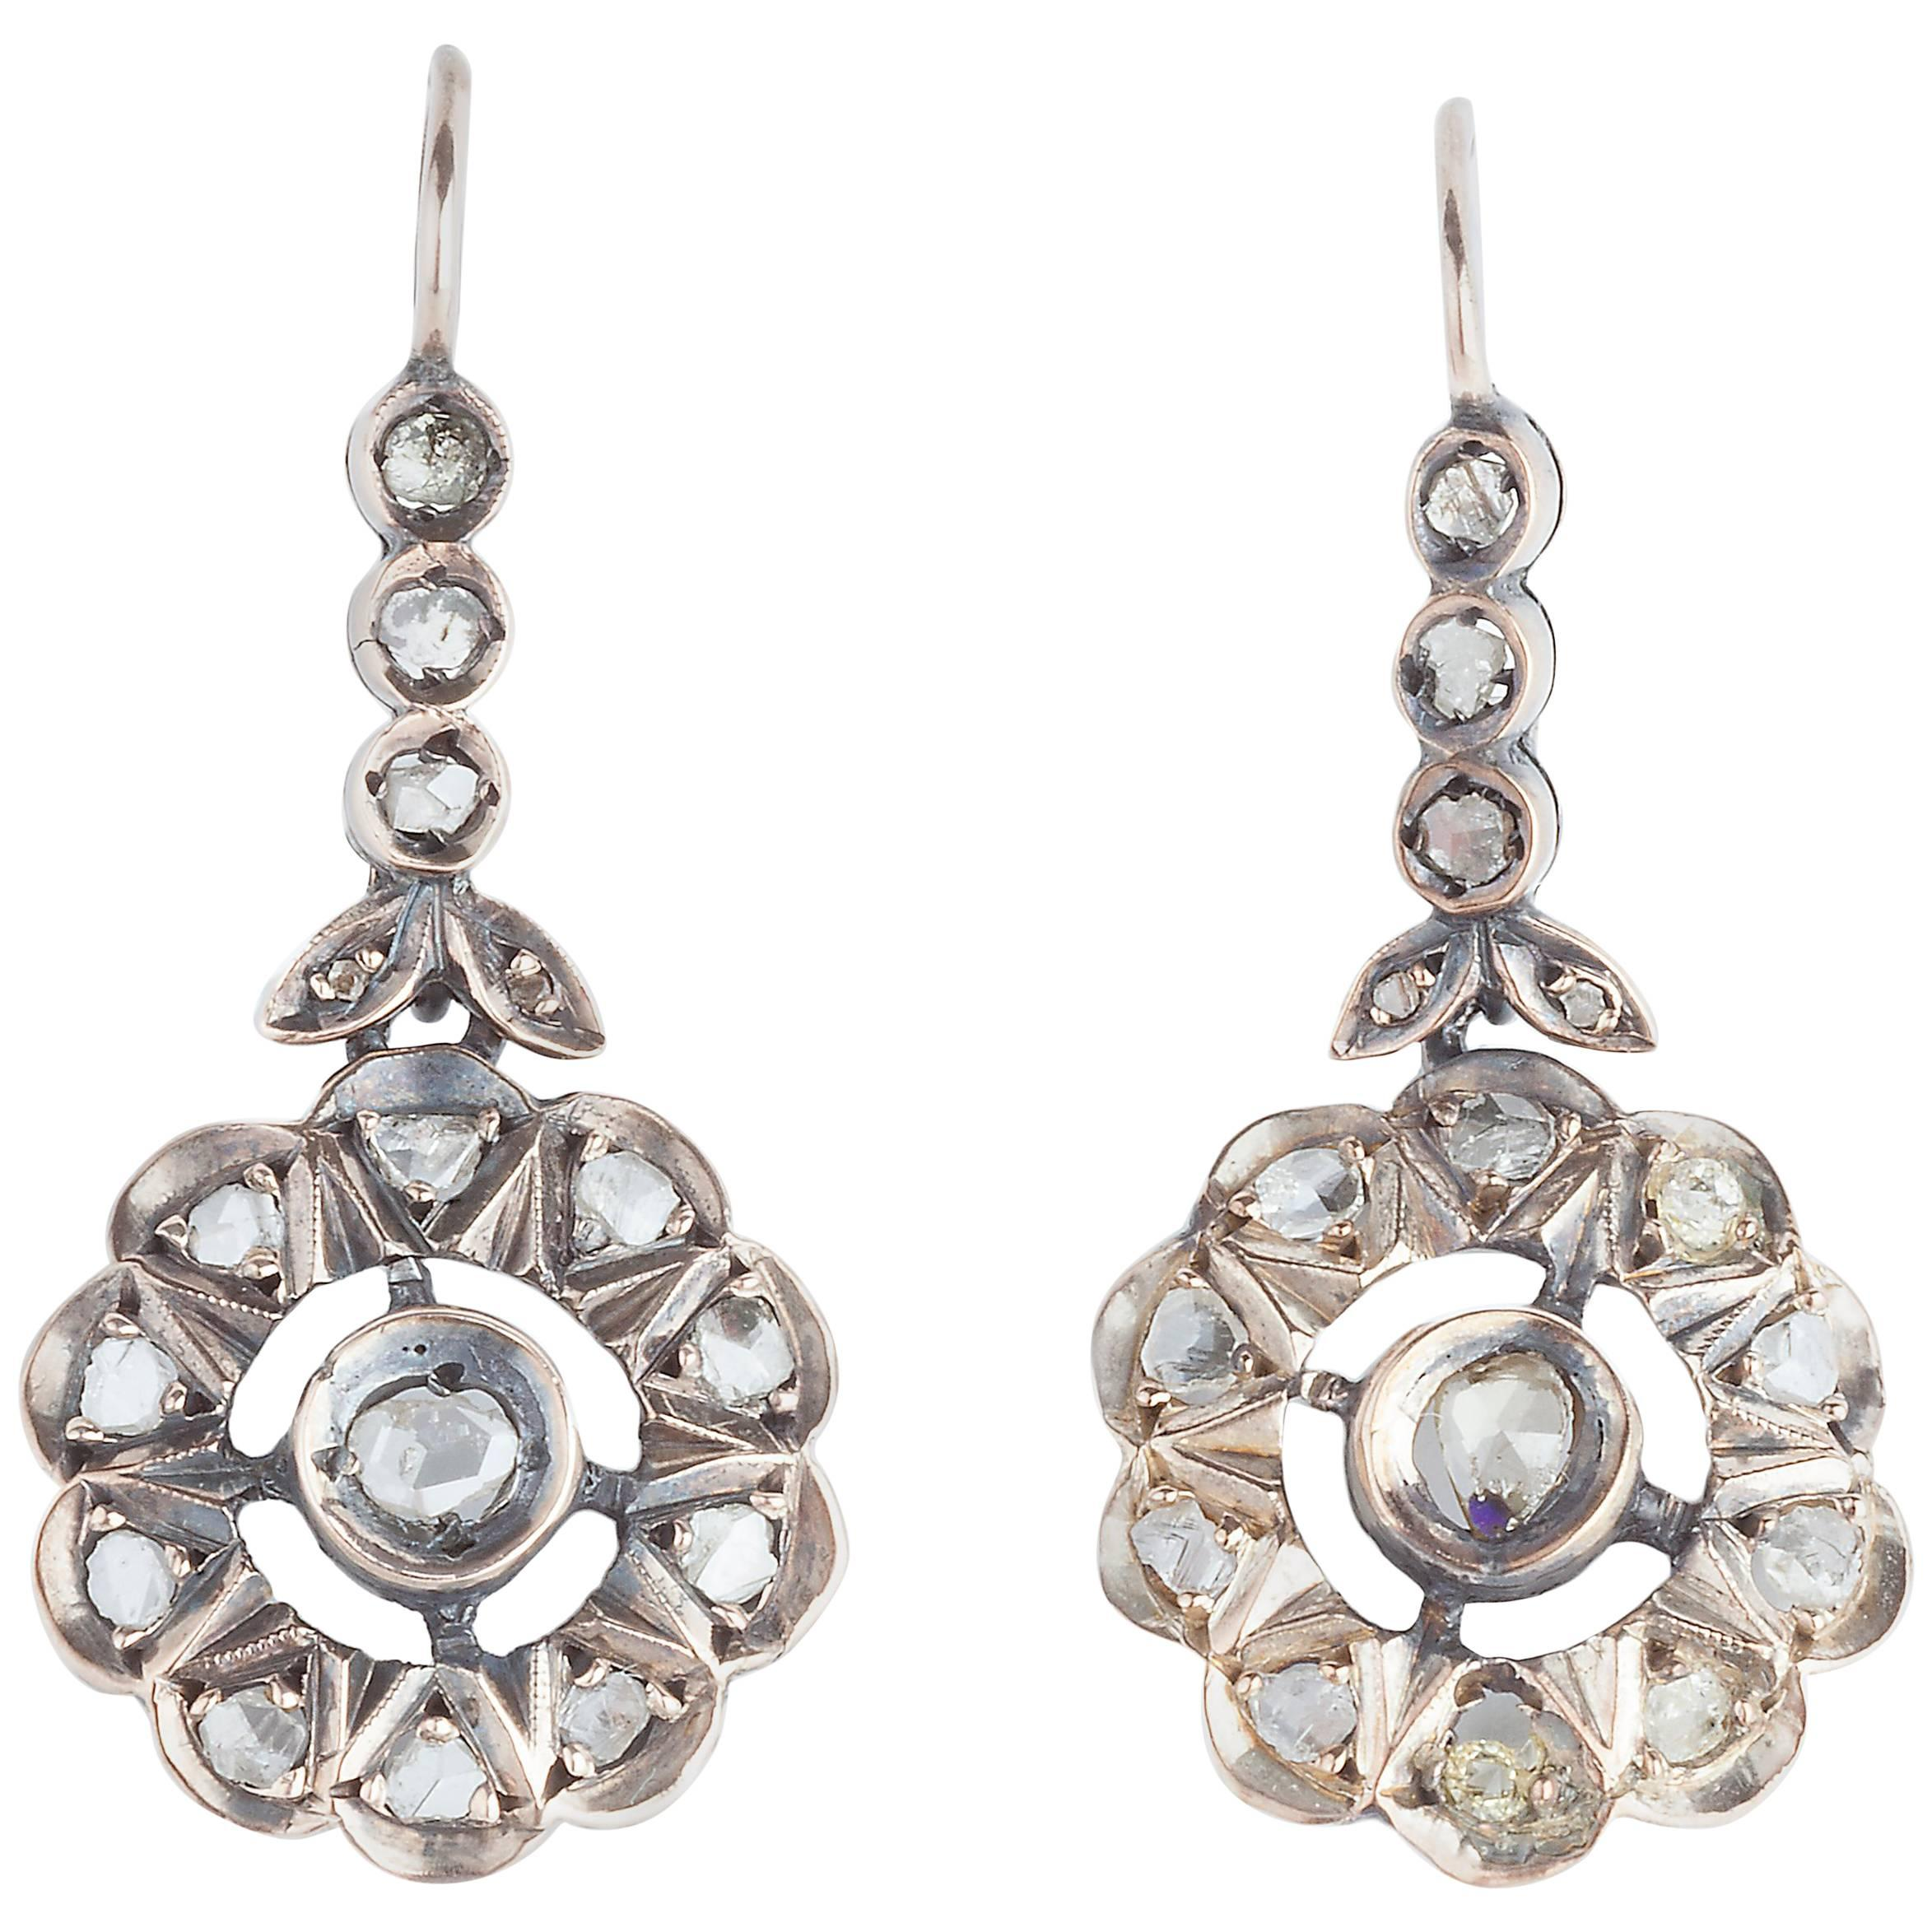 Edwardian Rose Cut Diamond Earrings For Sale at 1stdibs